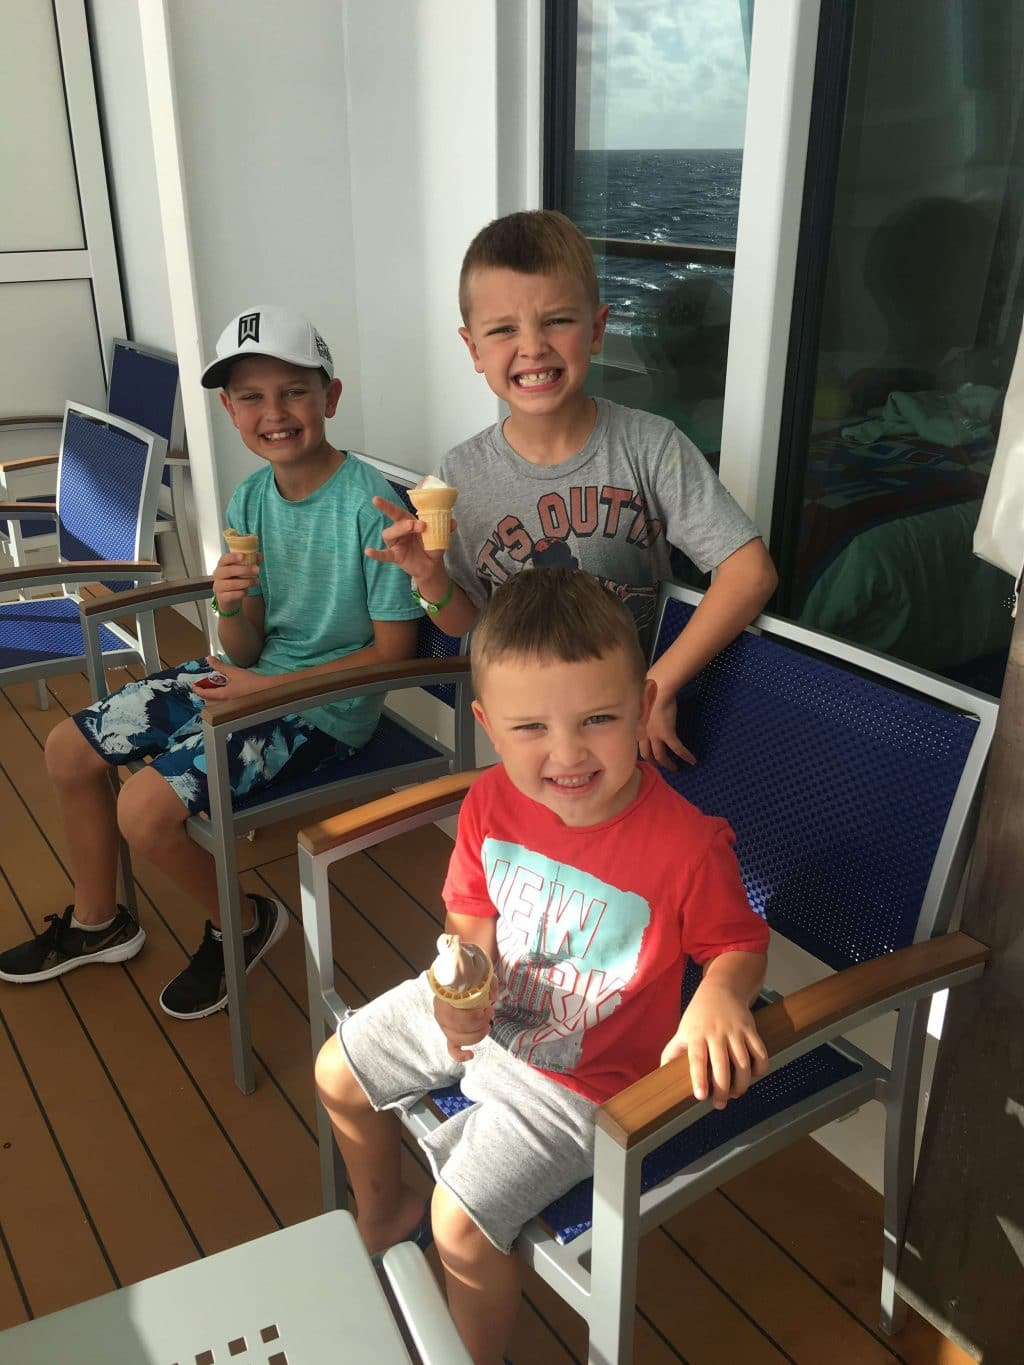 Carnival Horizon, family cruise recap, Stilettos and Diapers, Cooper Wey, Callan Wey, Lincoln Wey